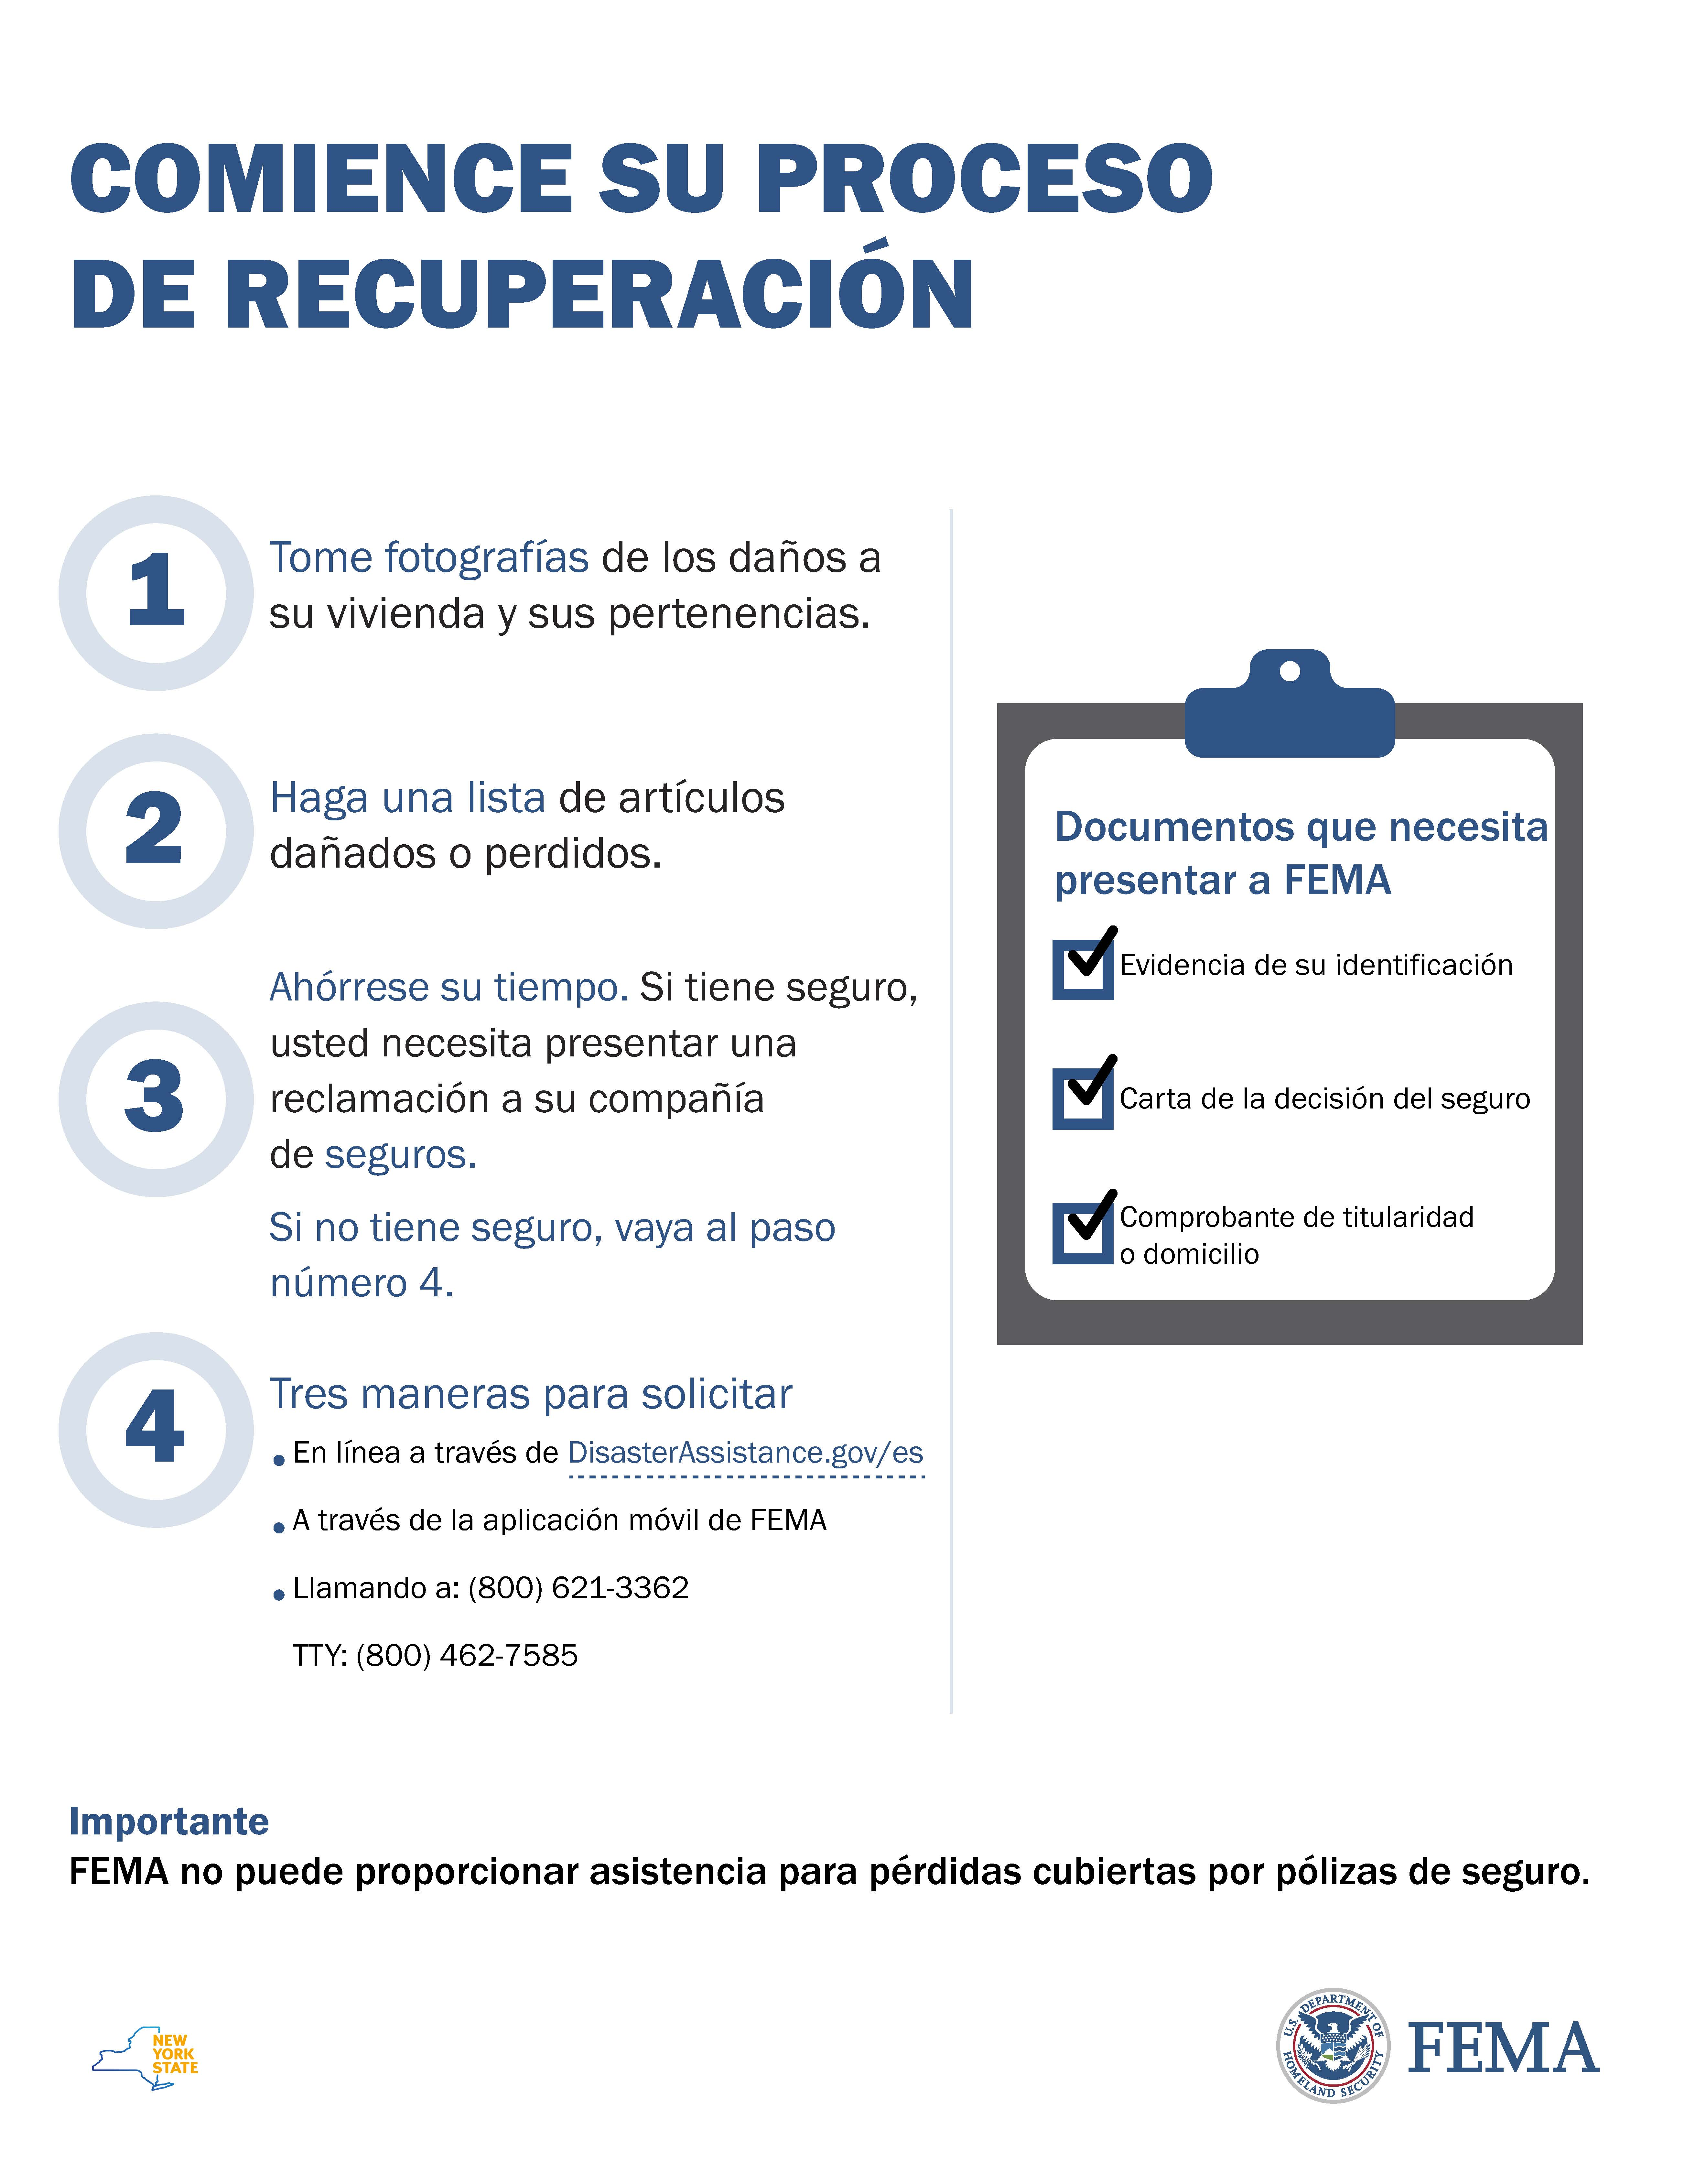 Spanish start_your_recovery_process_flyer_Page_2.jpg